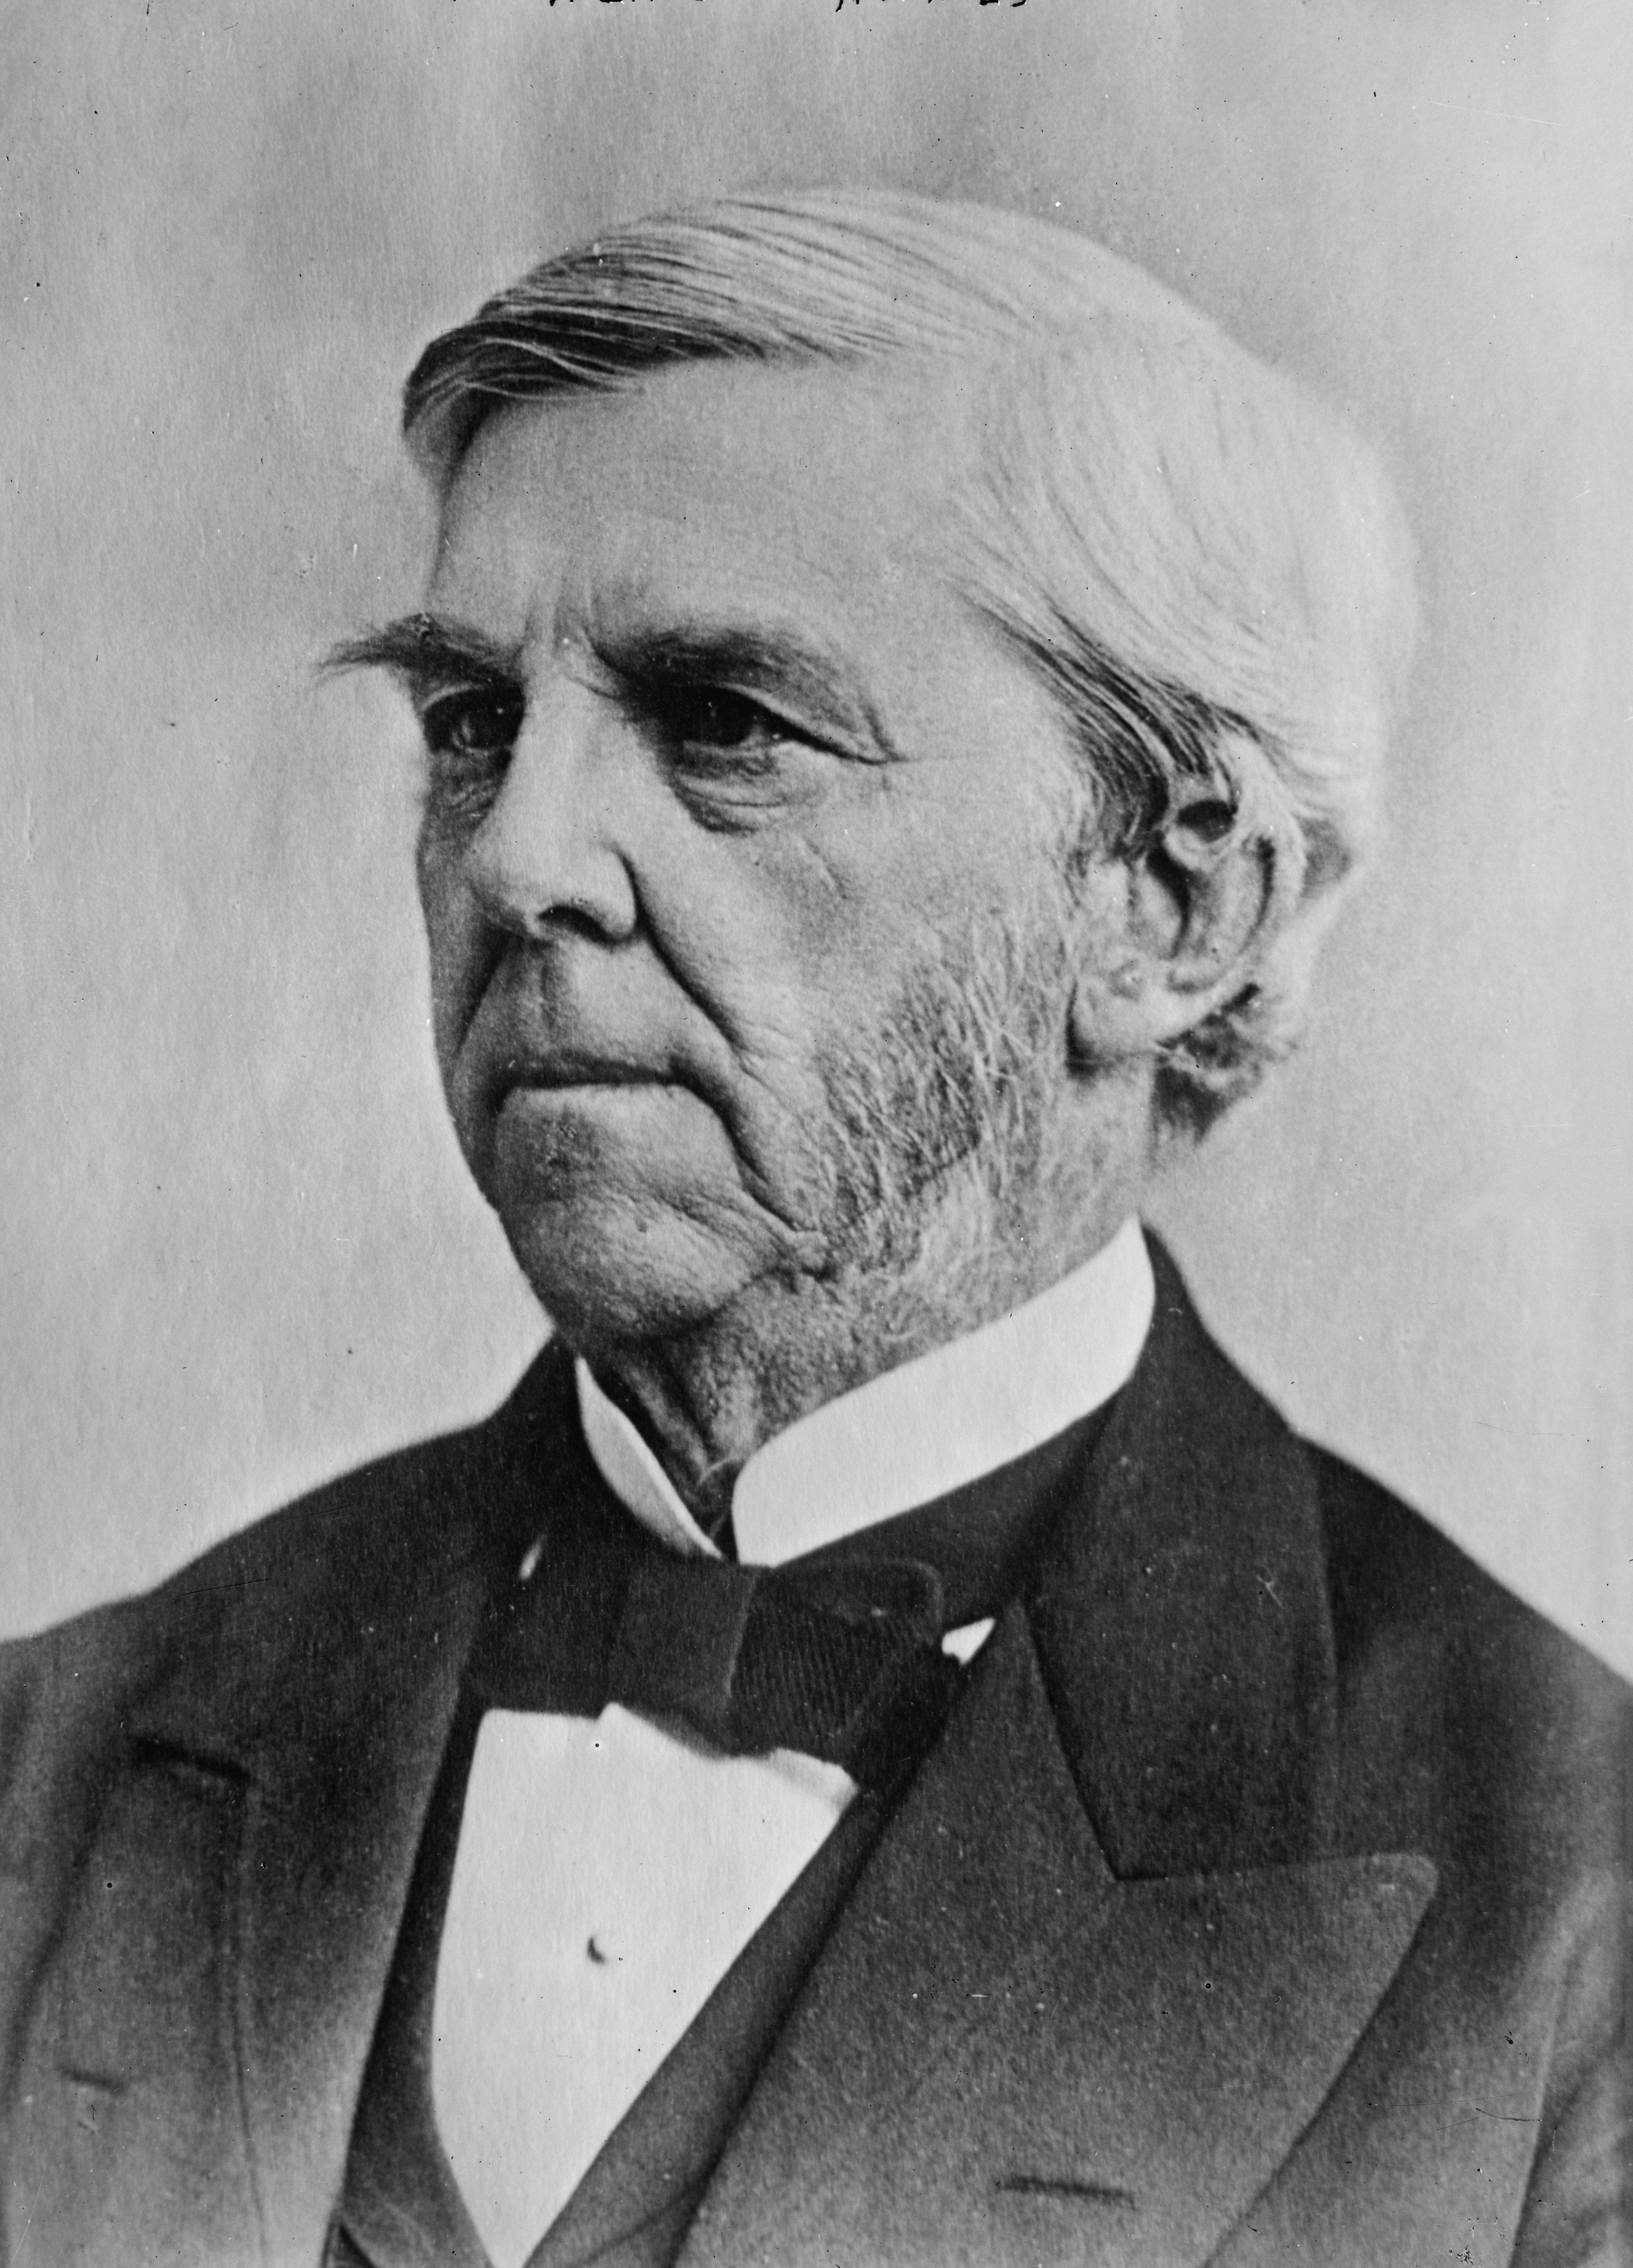 oliver wendell holmes essay Poem hunter all poems of by oliver wendell holmes poems 336 poems of oliver wendell holmes phenomenal woman, still i rise, the road not taken, if you forget me, dreams.